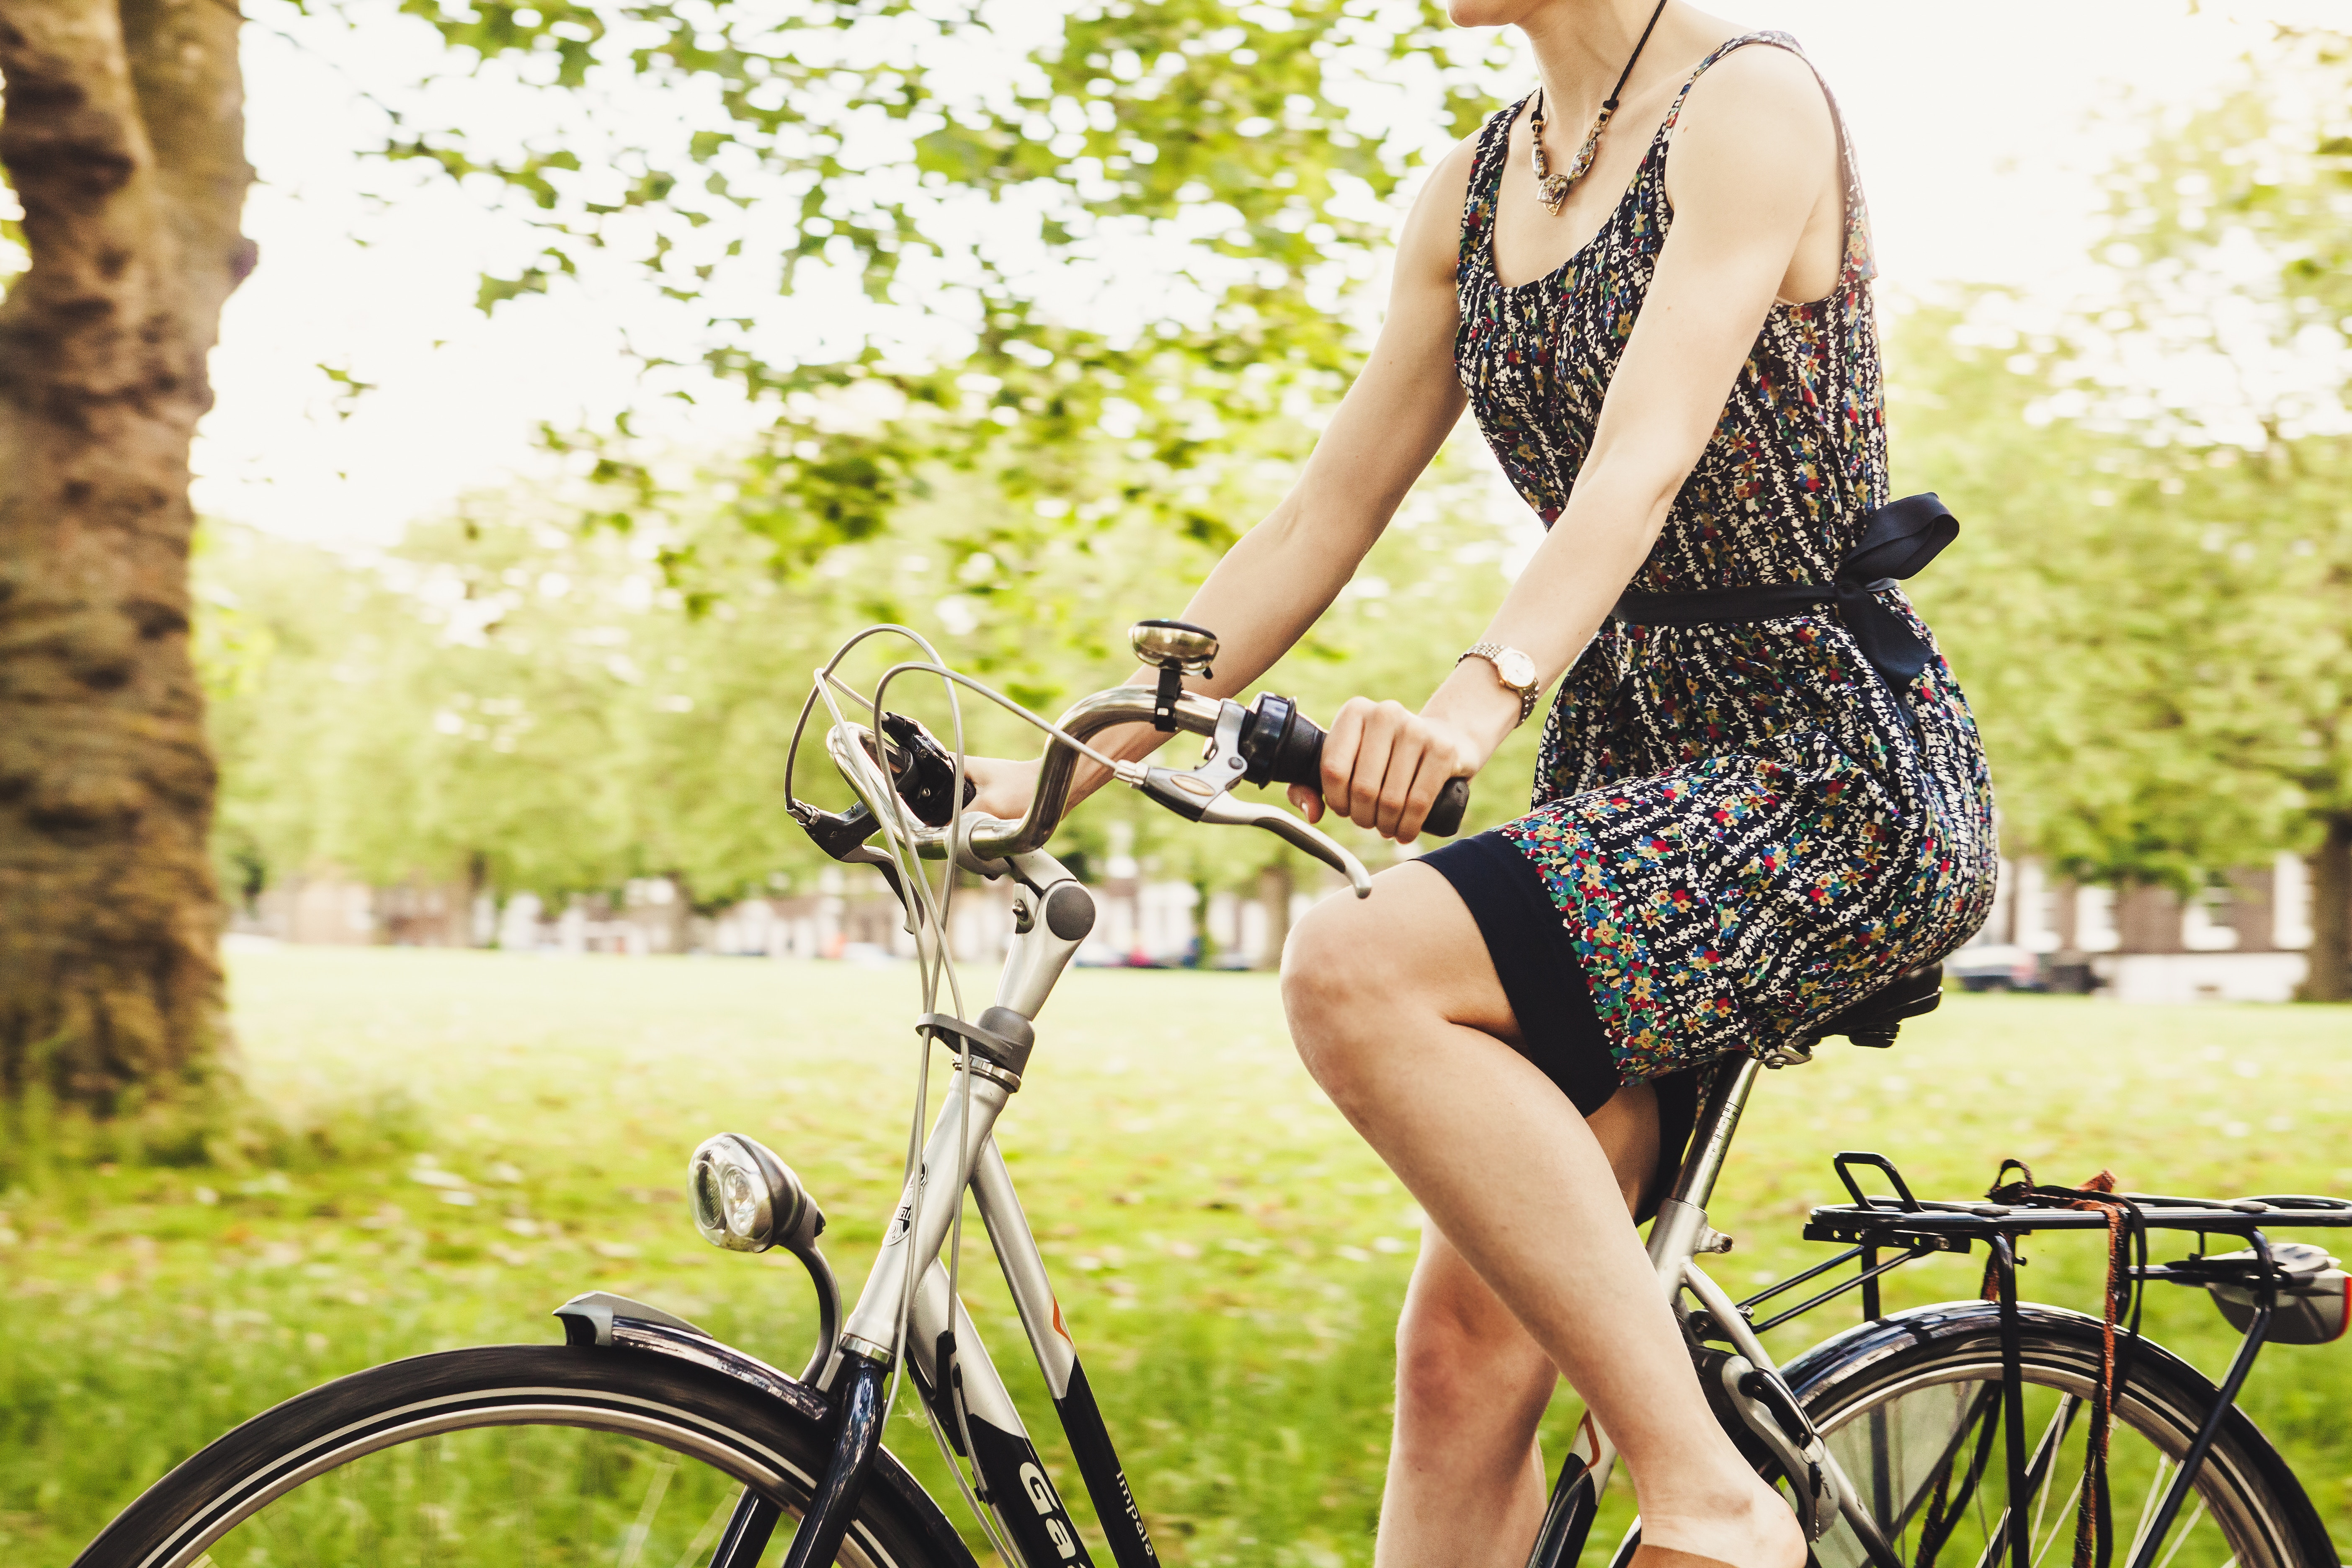 How to Enjoy Your Bike Rides When You Have Hemorrhoids